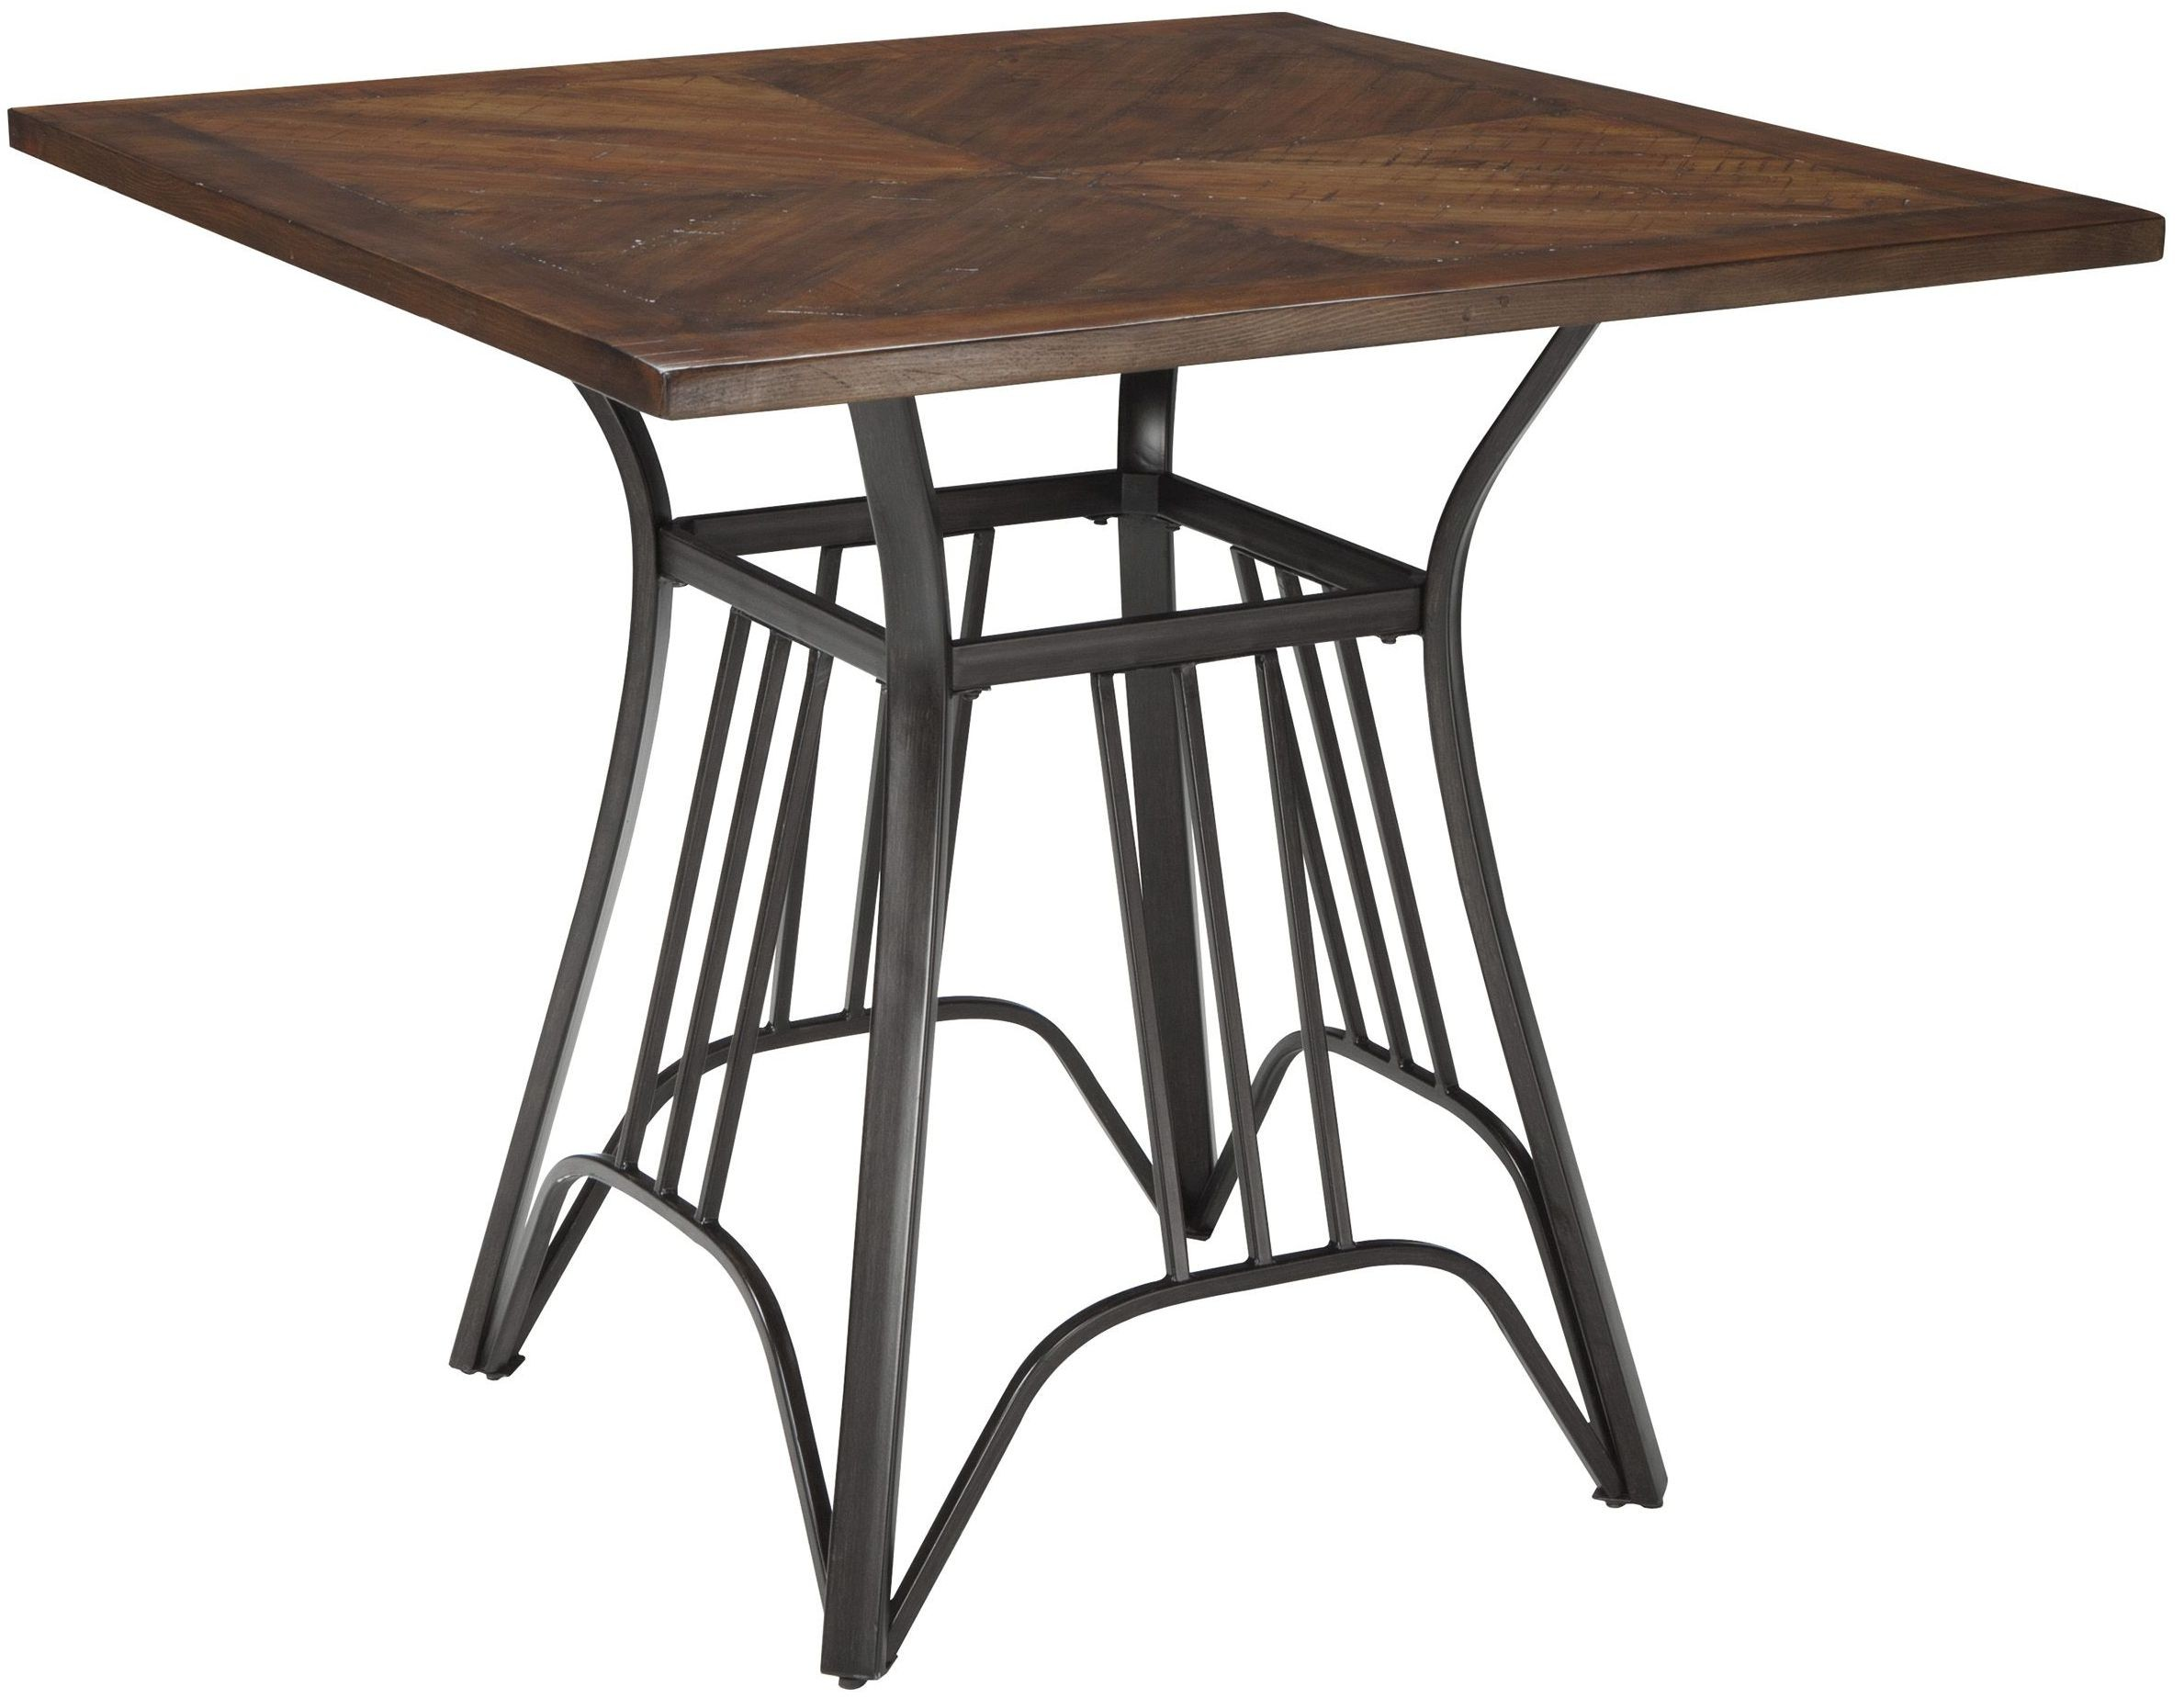 zanilly two tone square counter height dining table from ashley d507 13 coleman furniture. Black Bedroom Furniture Sets. Home Design Ideas